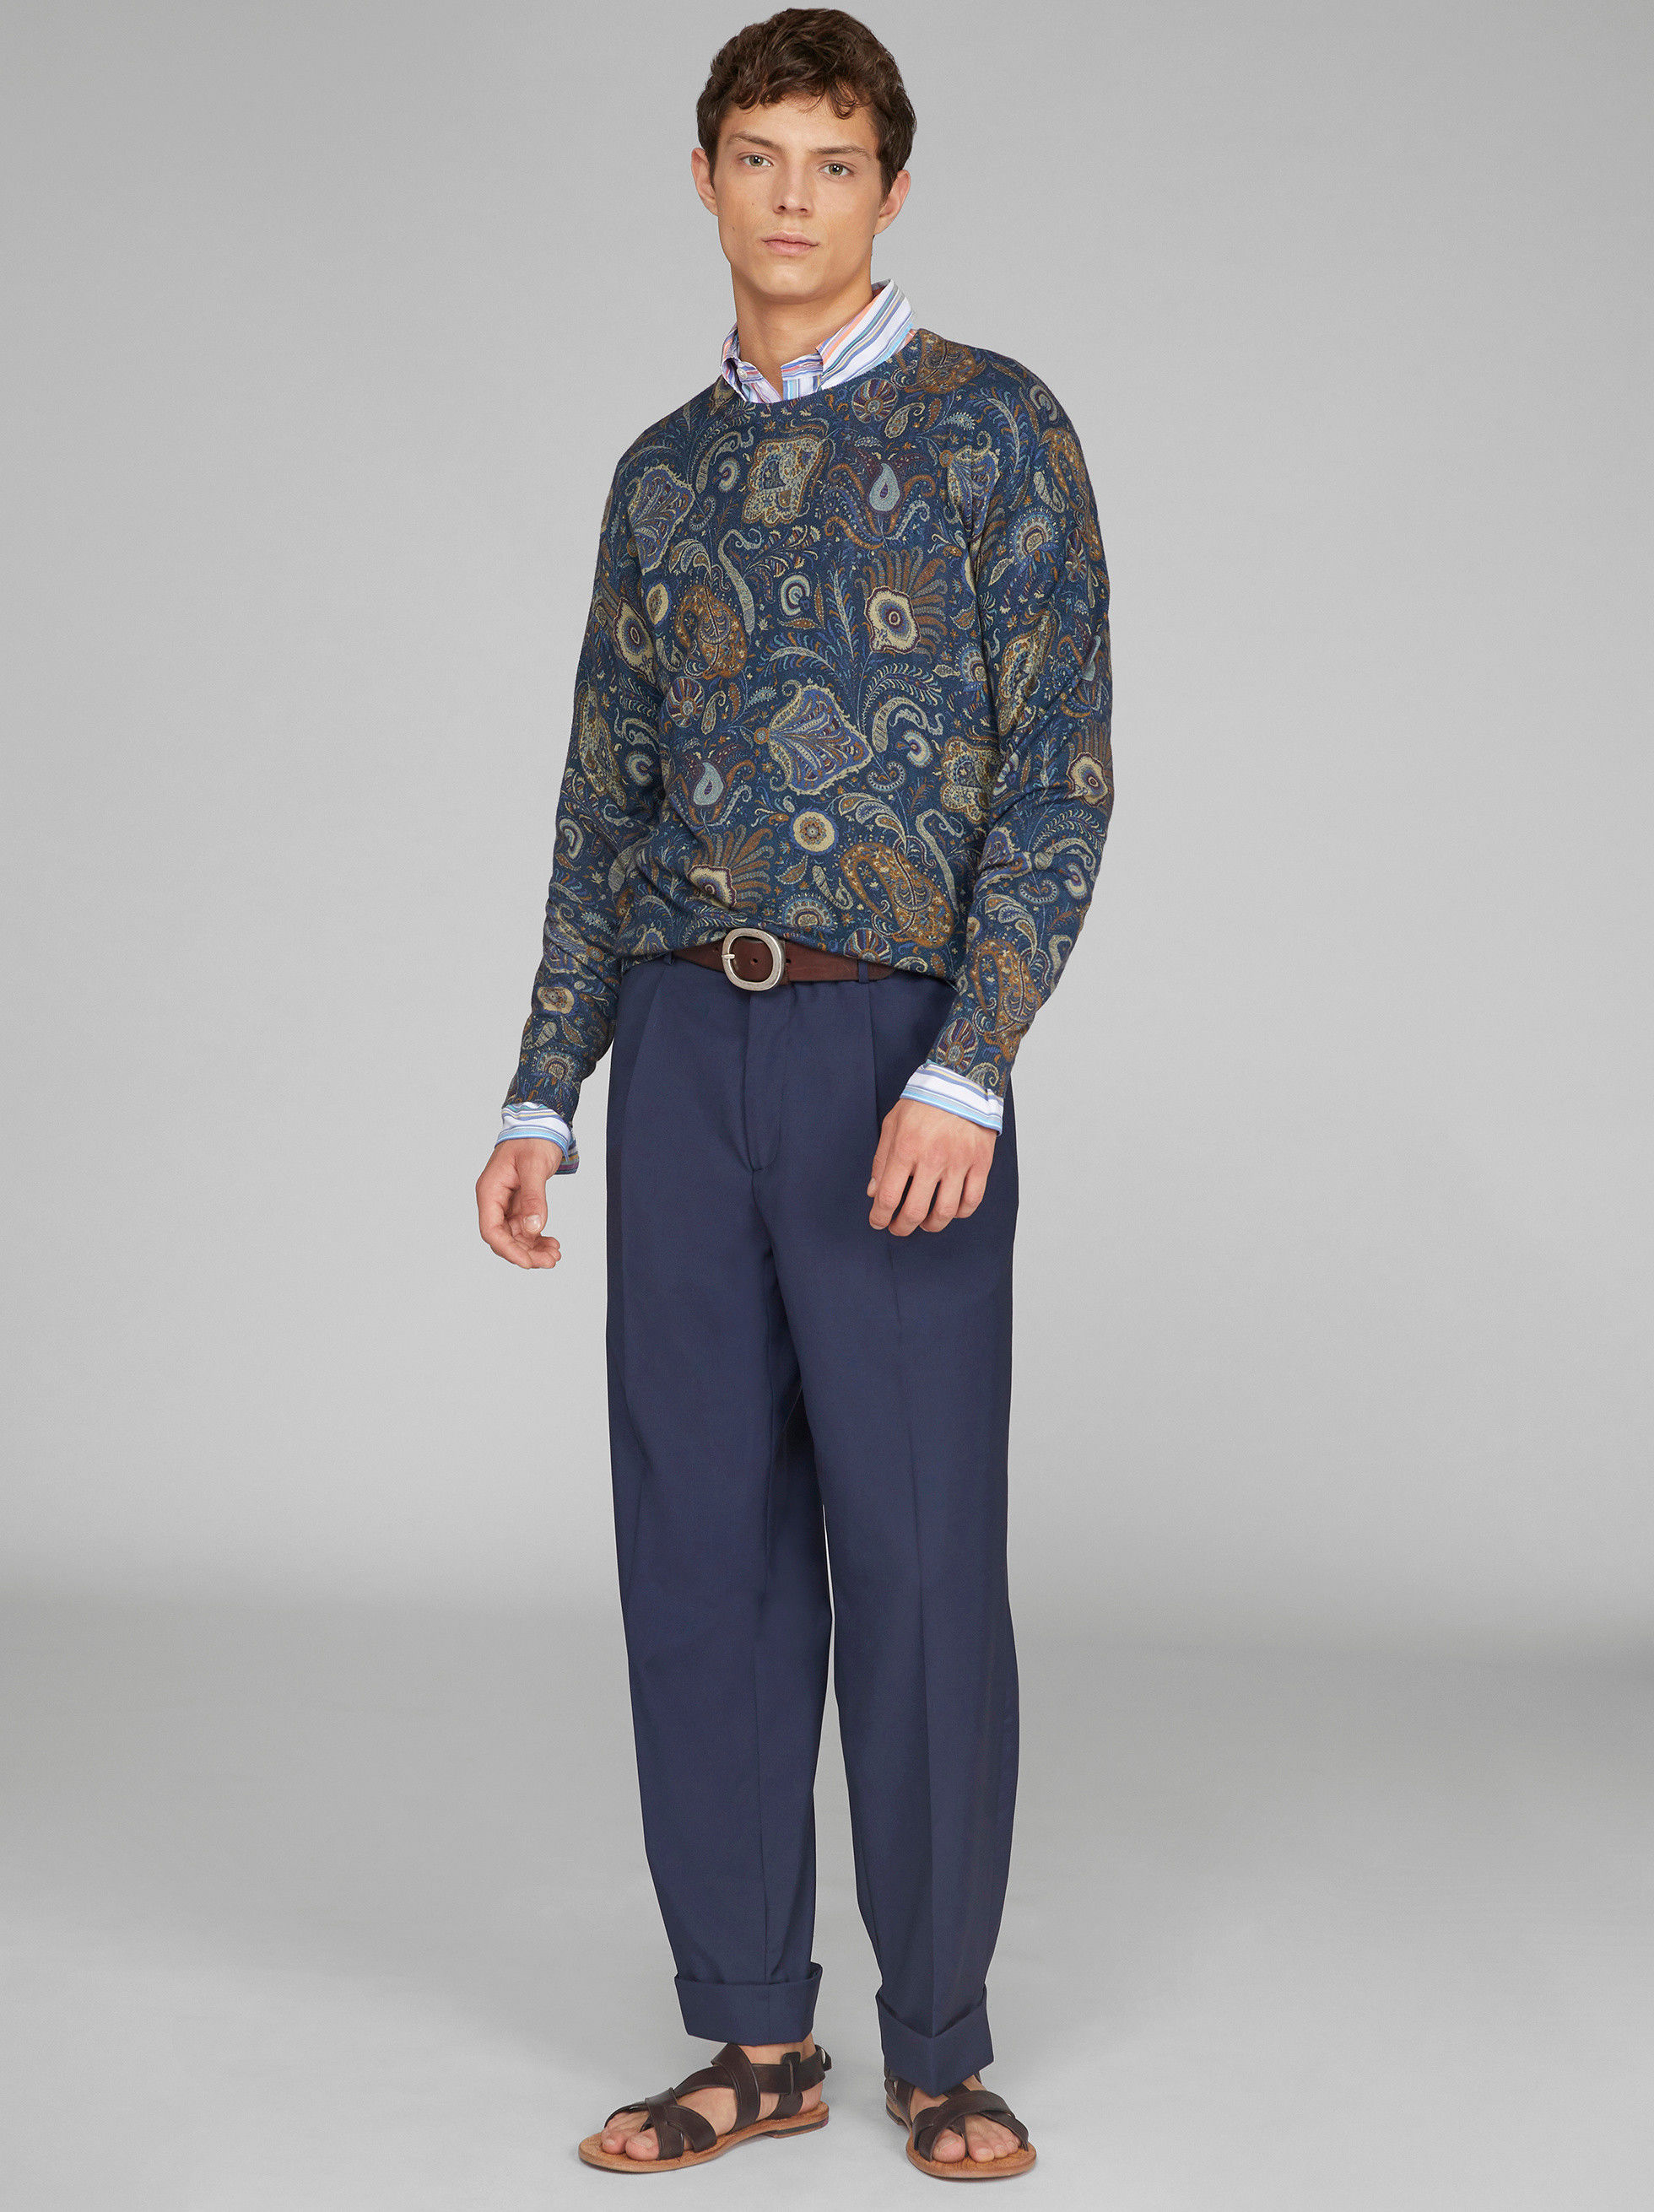 SILK AND CASHMERE PAISLEY PATTERN JUMPER